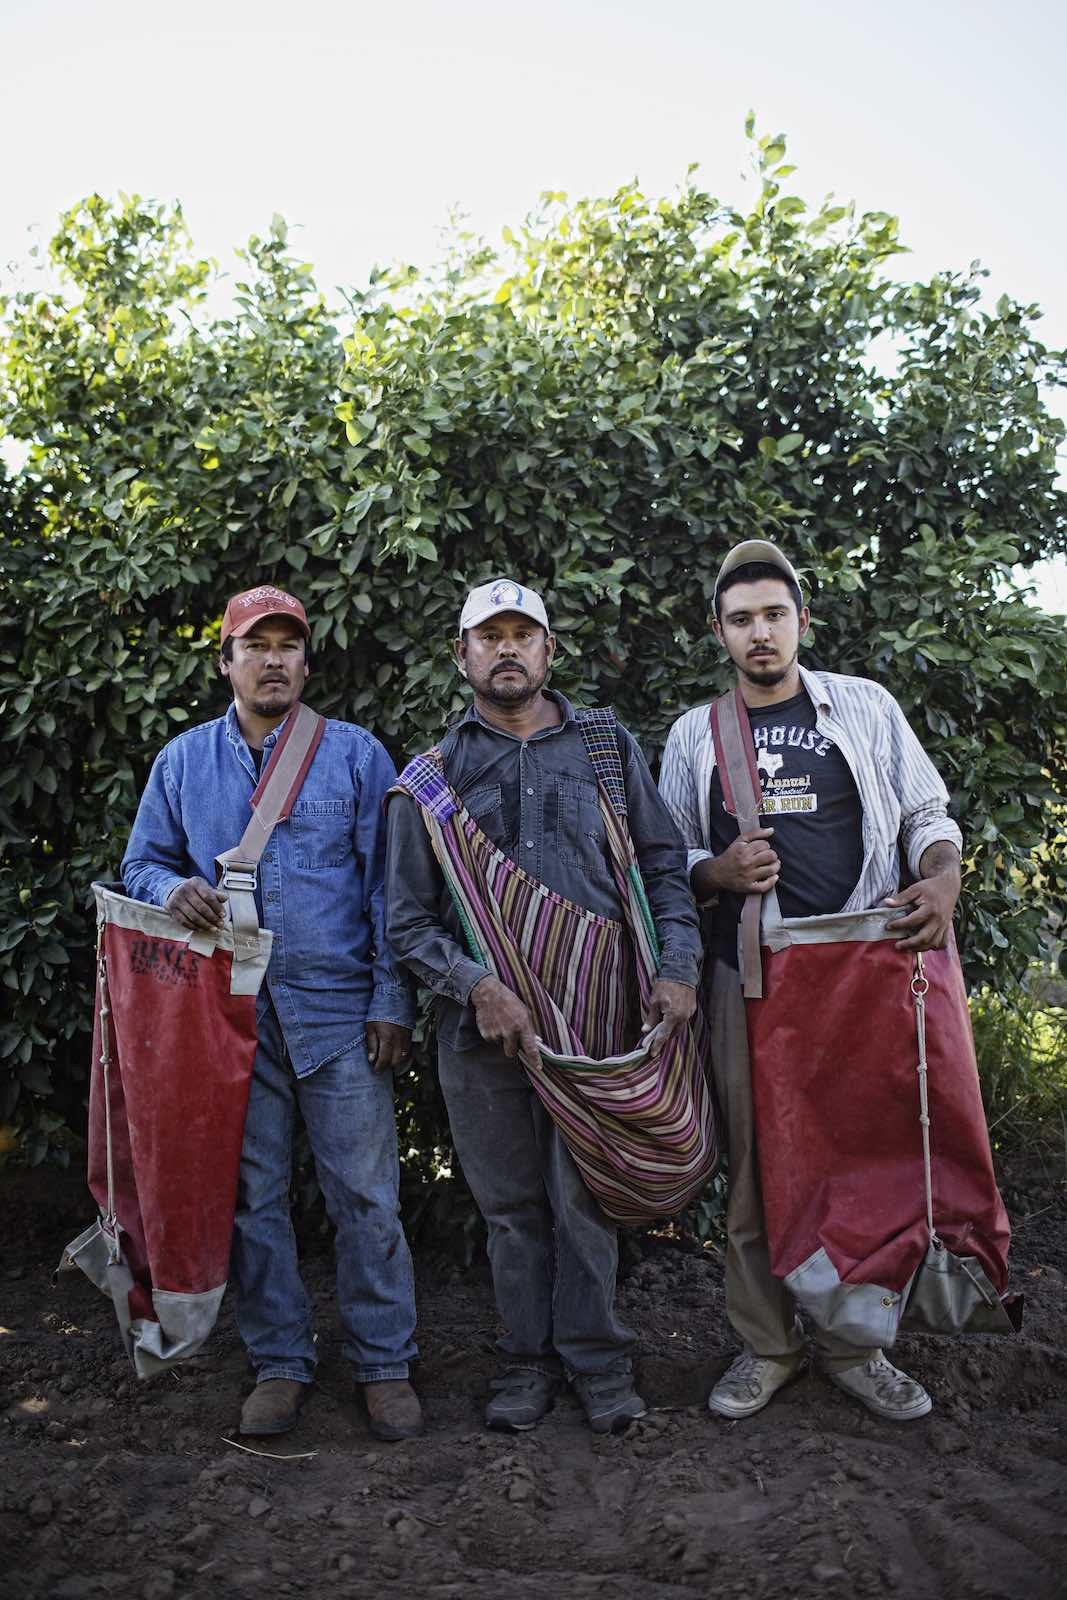 Grapefruit farmers standing among the trees, holding sacks for picking.